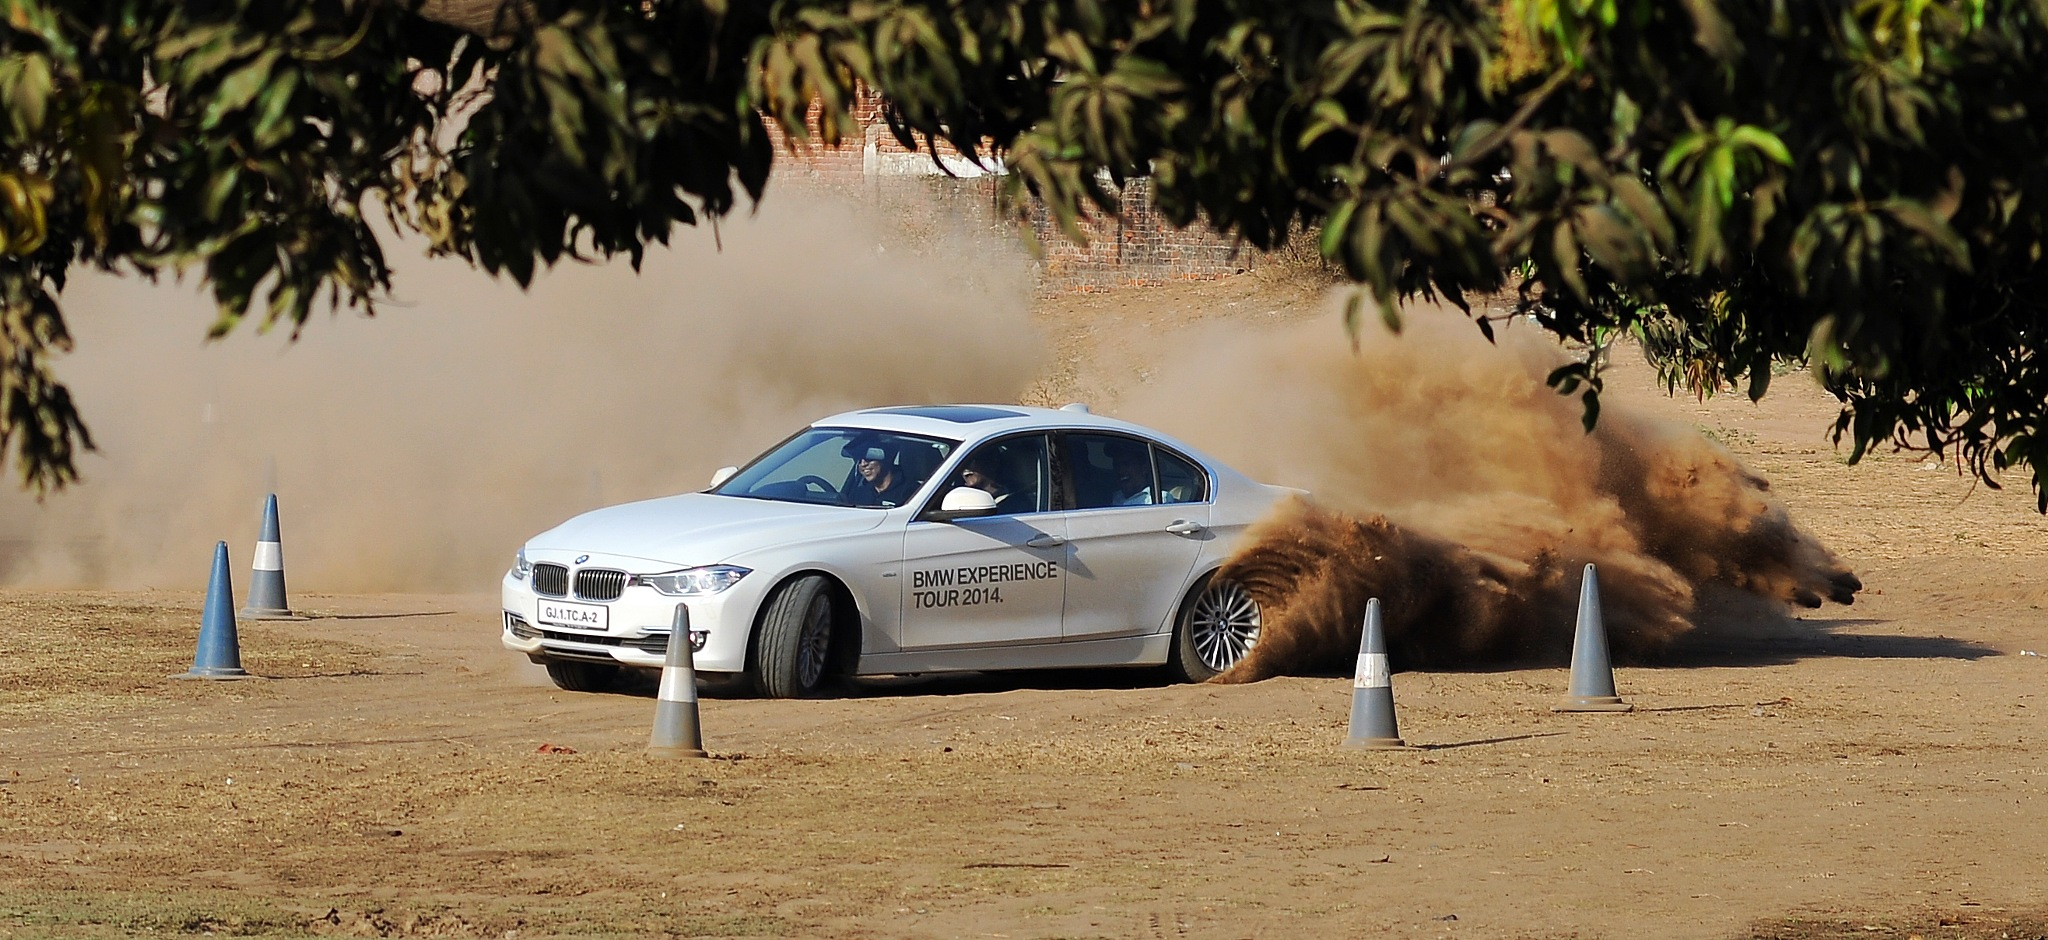 BMW Test Draiv by Chirag Bhavsar